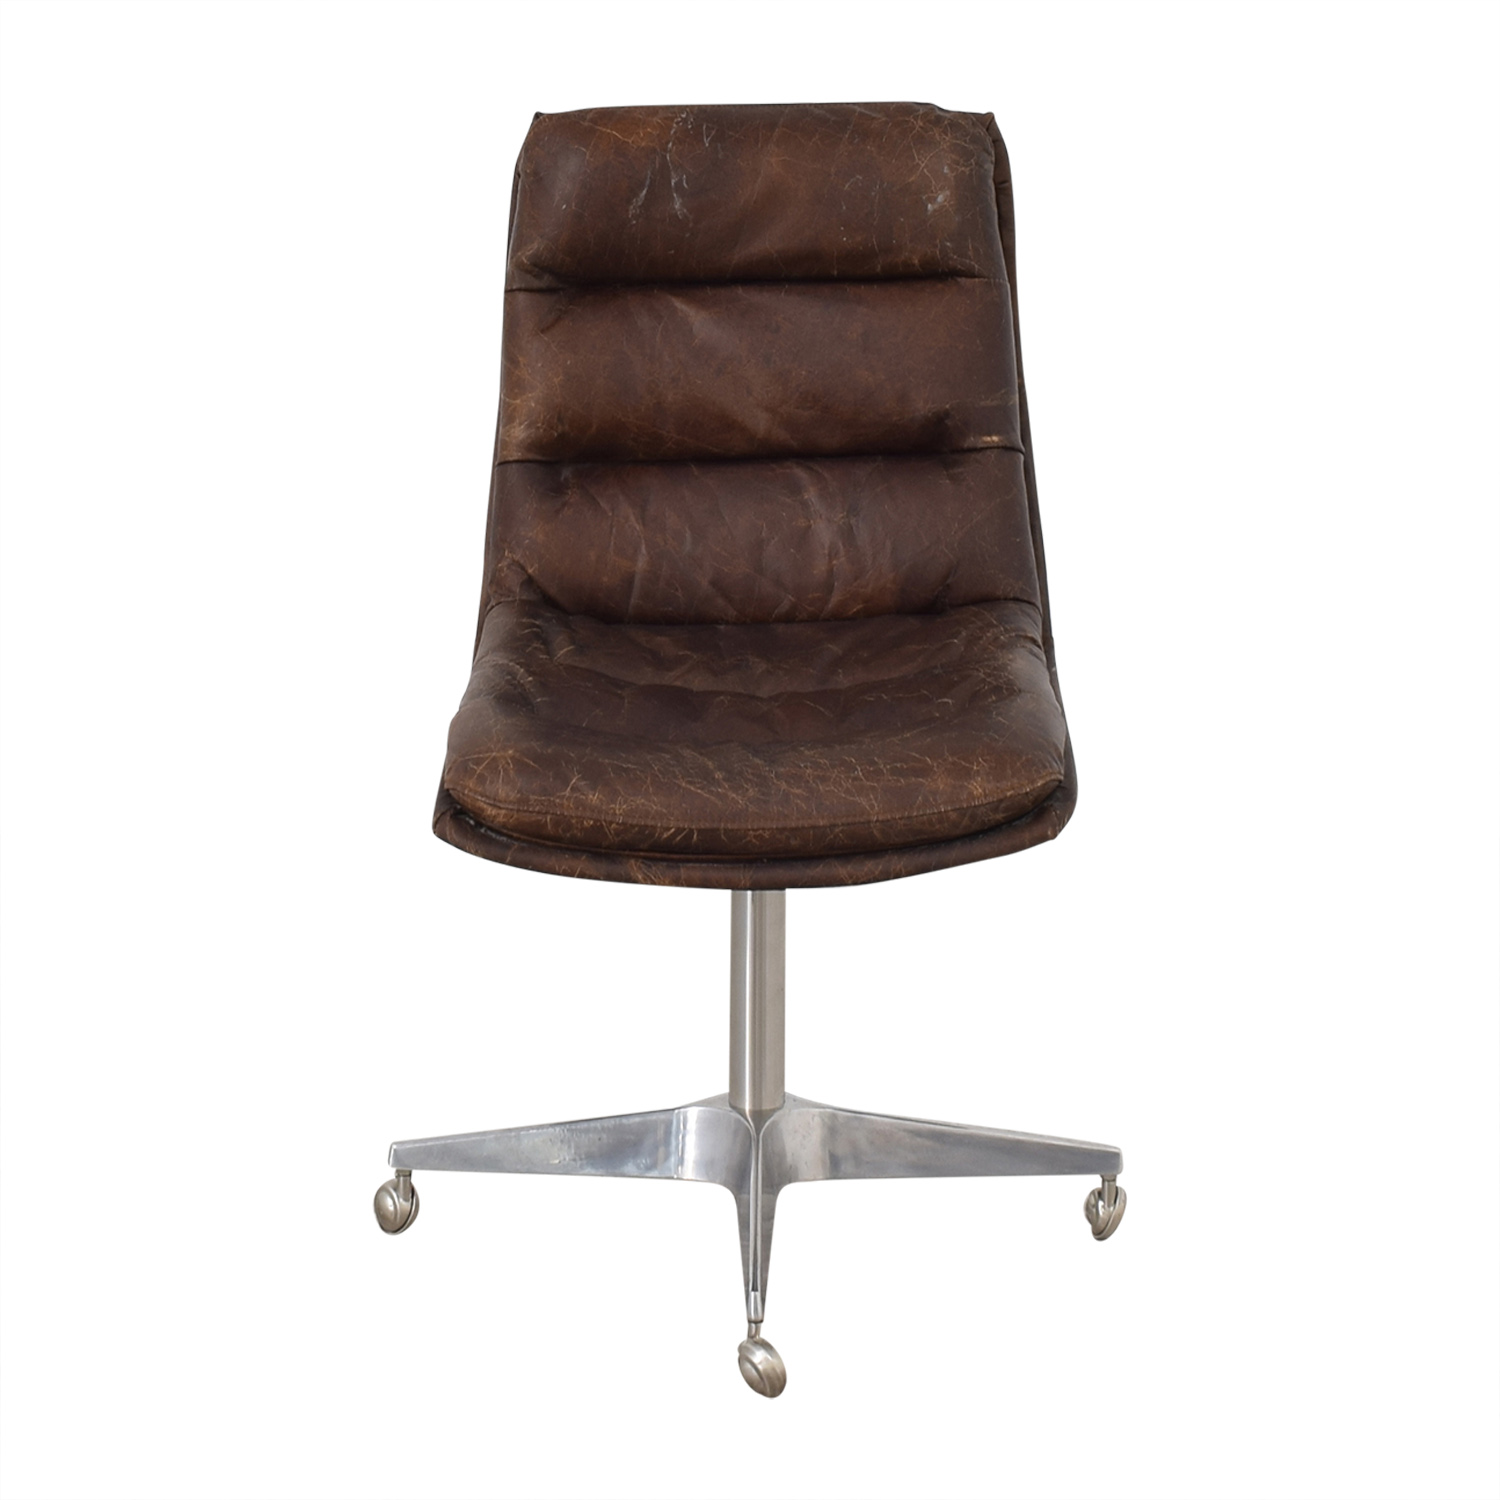 Restoration Hardware Restoration Hardware Griffith Desk Chair ct